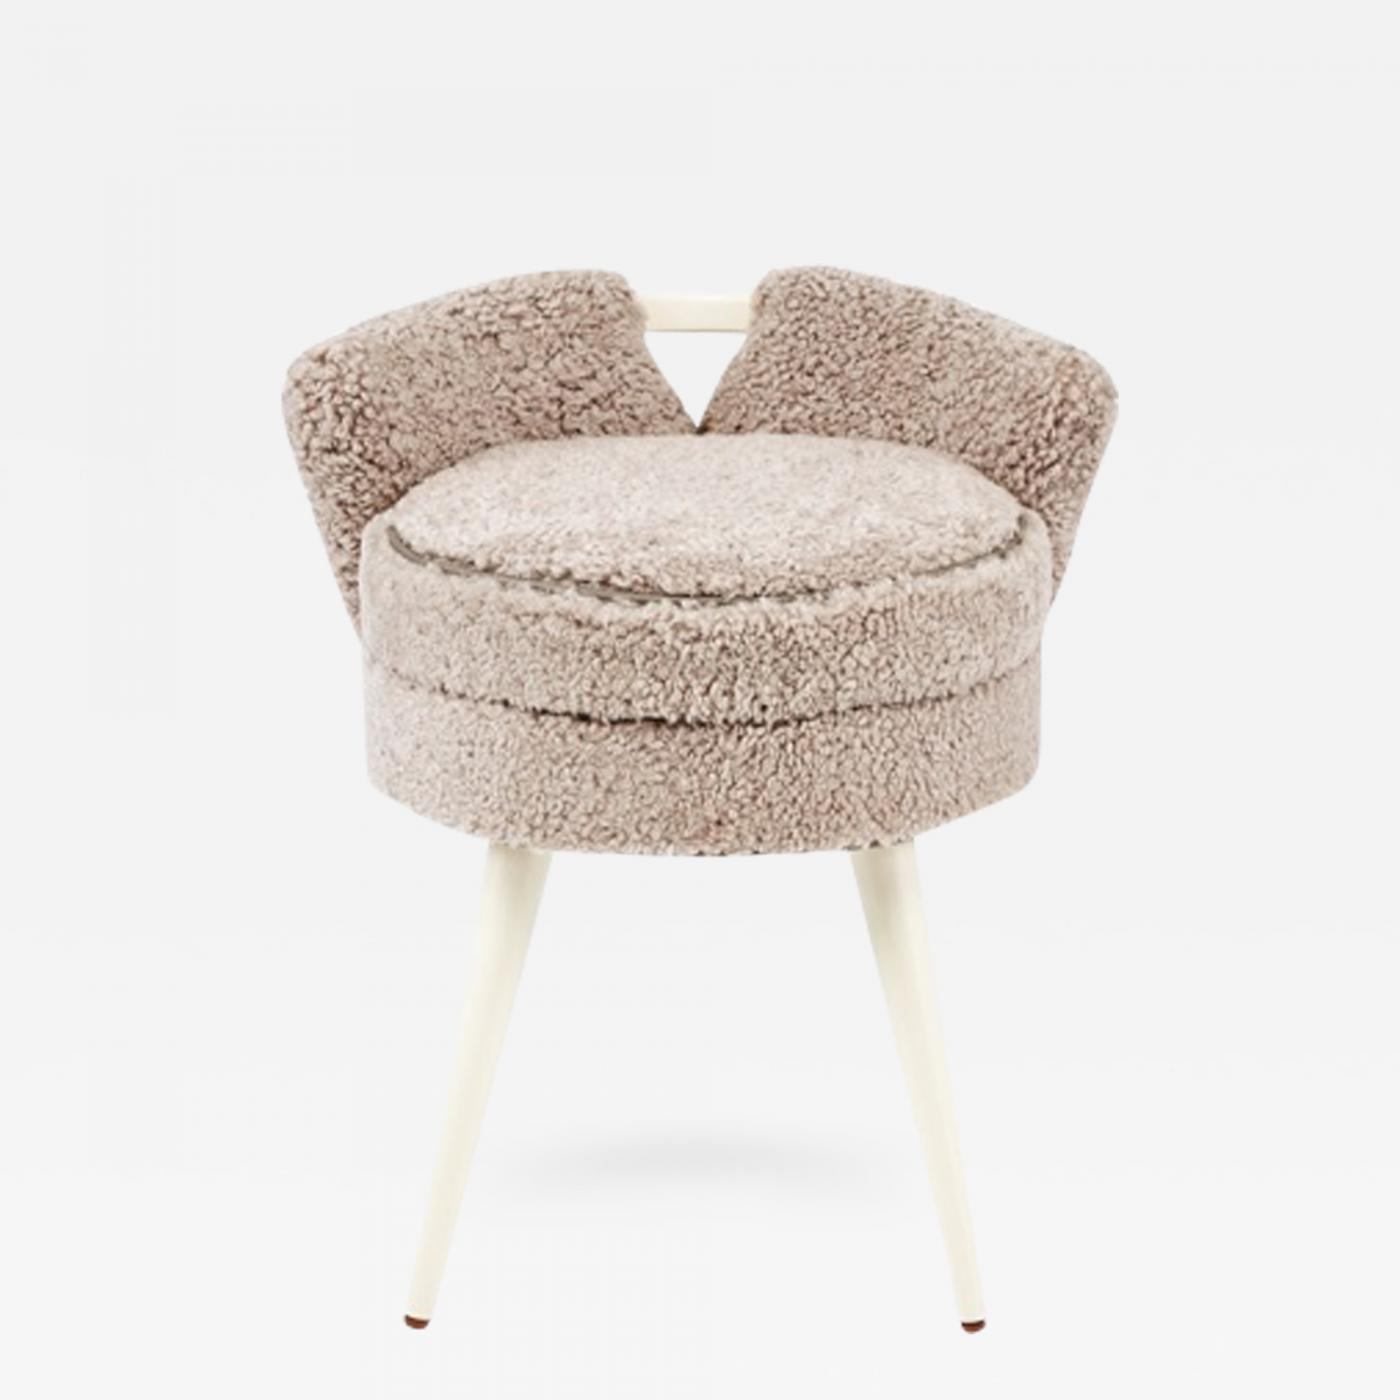 Stupendous Paul Frankl Rare Paul Frankl Swivel Vanity Stool In Shearling Andrewgaddart Wooden Chair Designs For Living Room Andrewgaddartcom